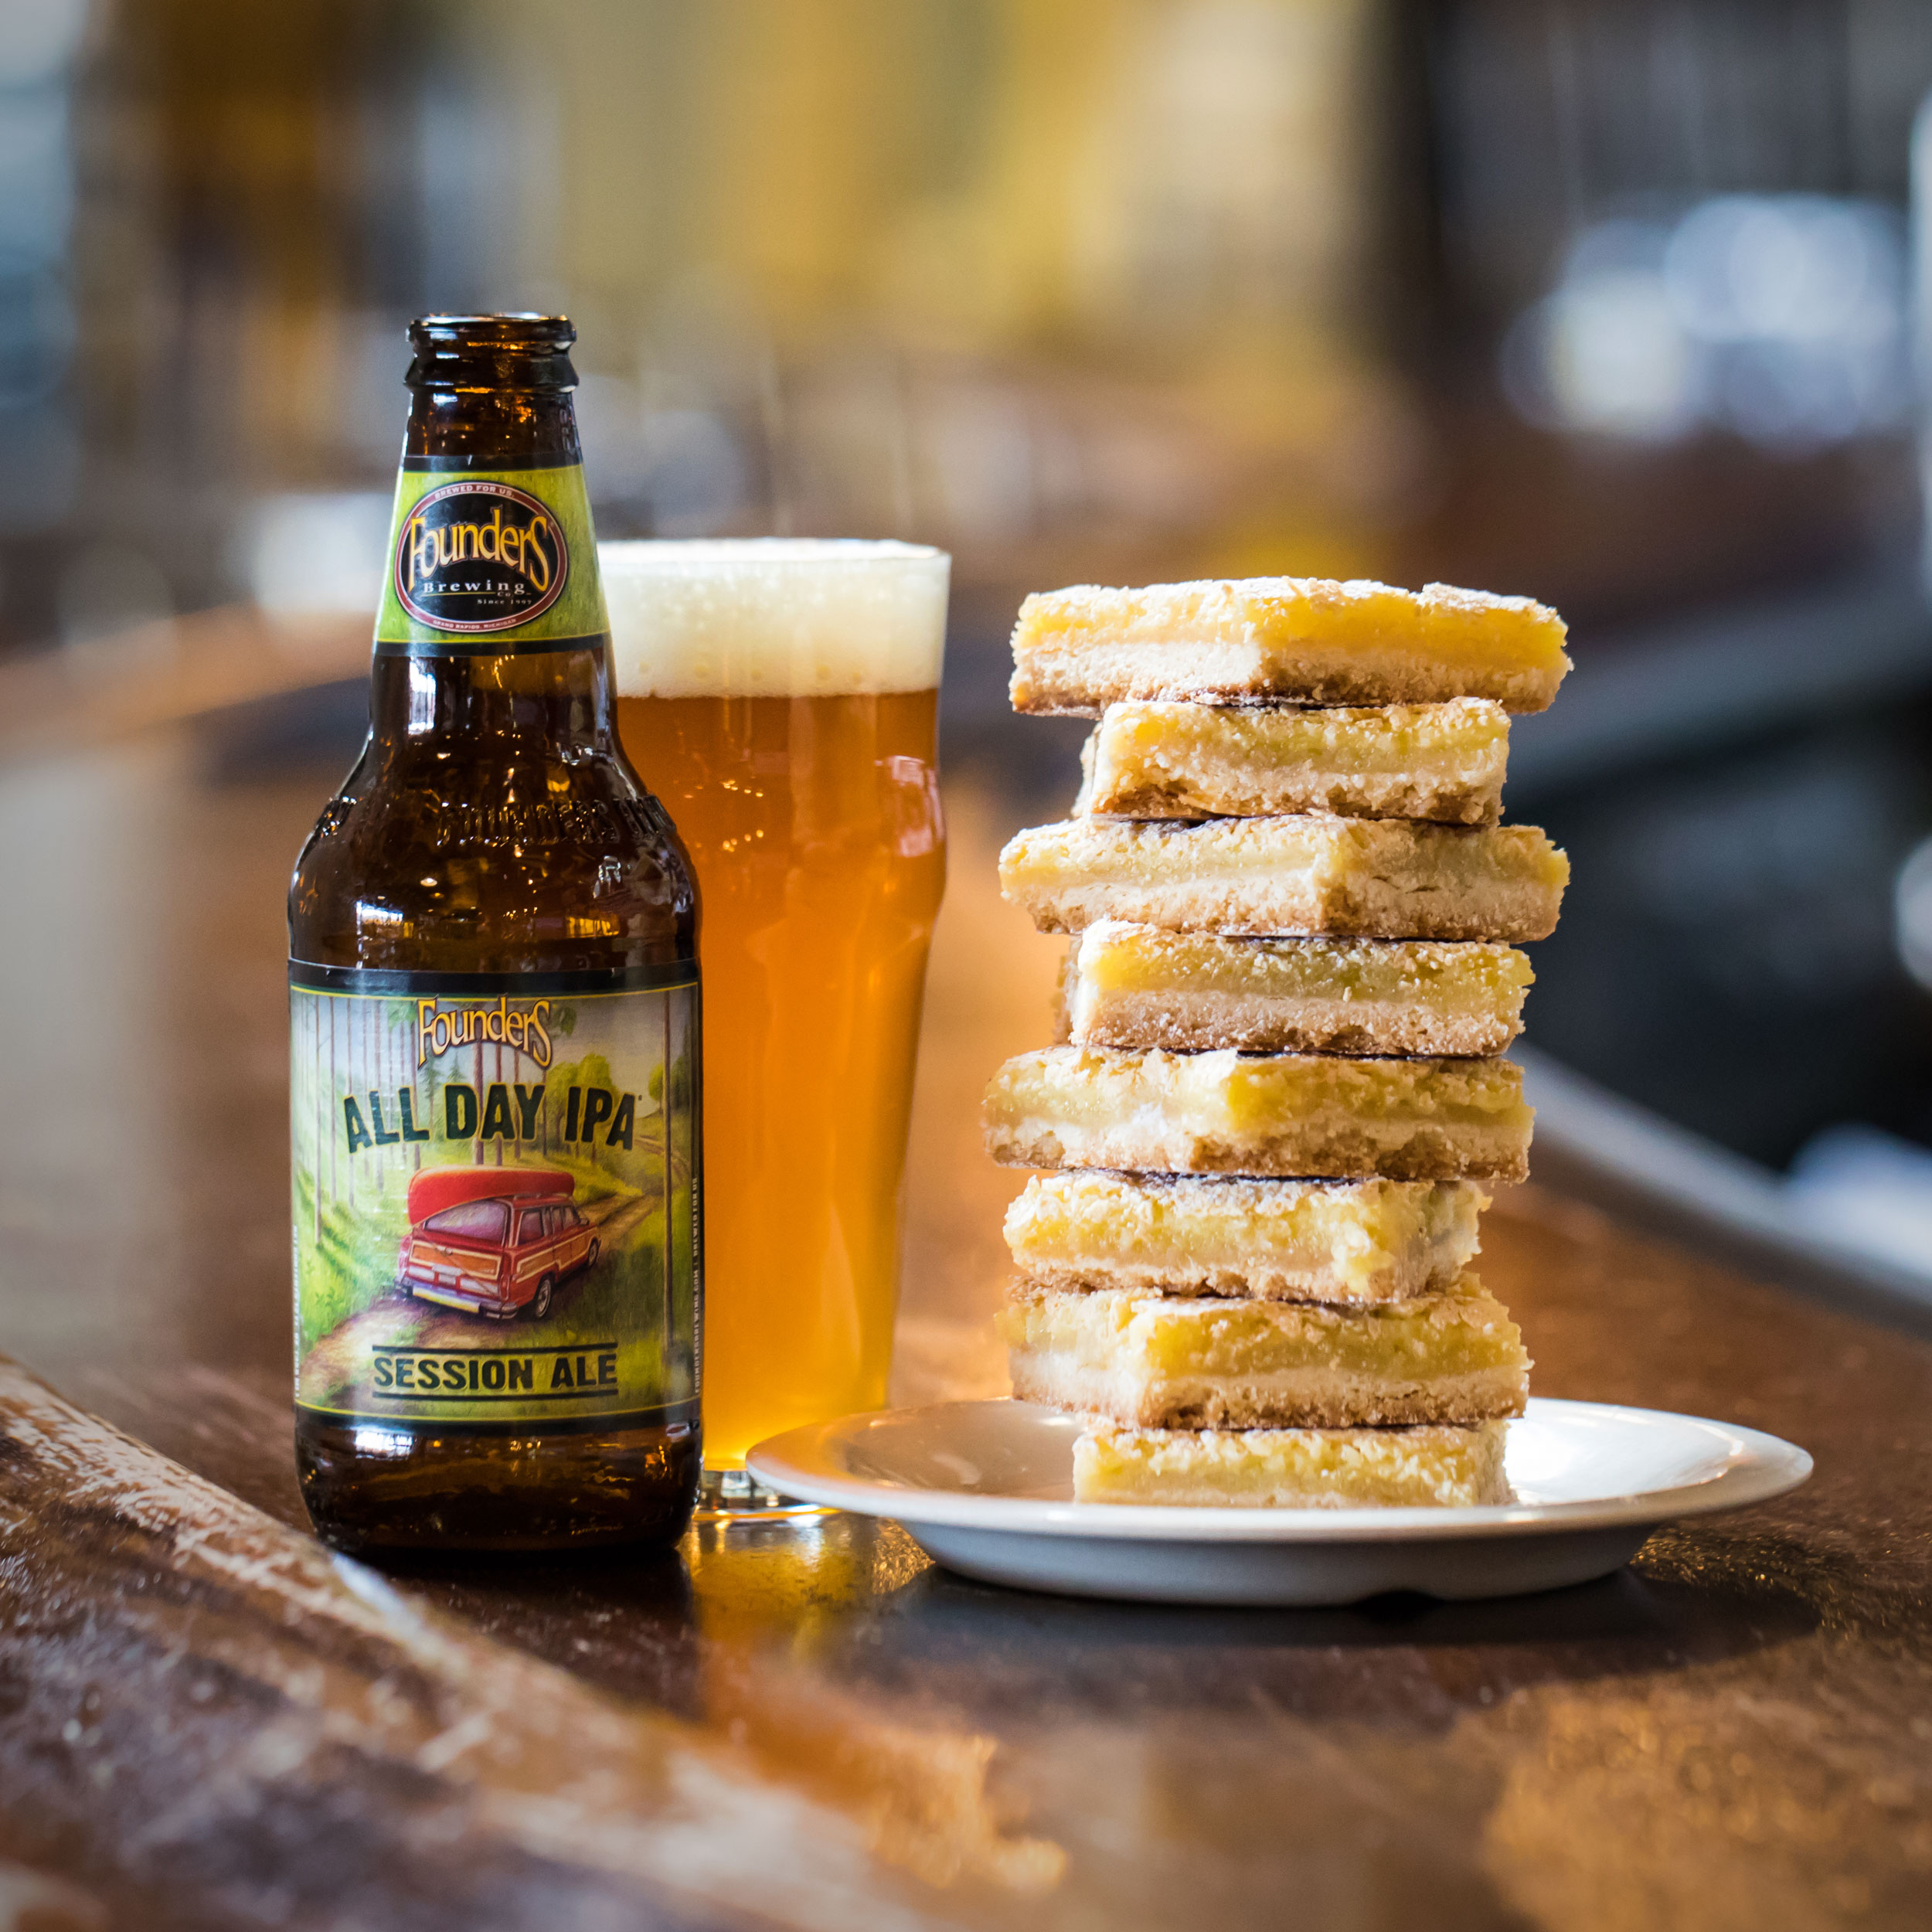 Founder's All Day IPA with stack of lemon bars on the bar